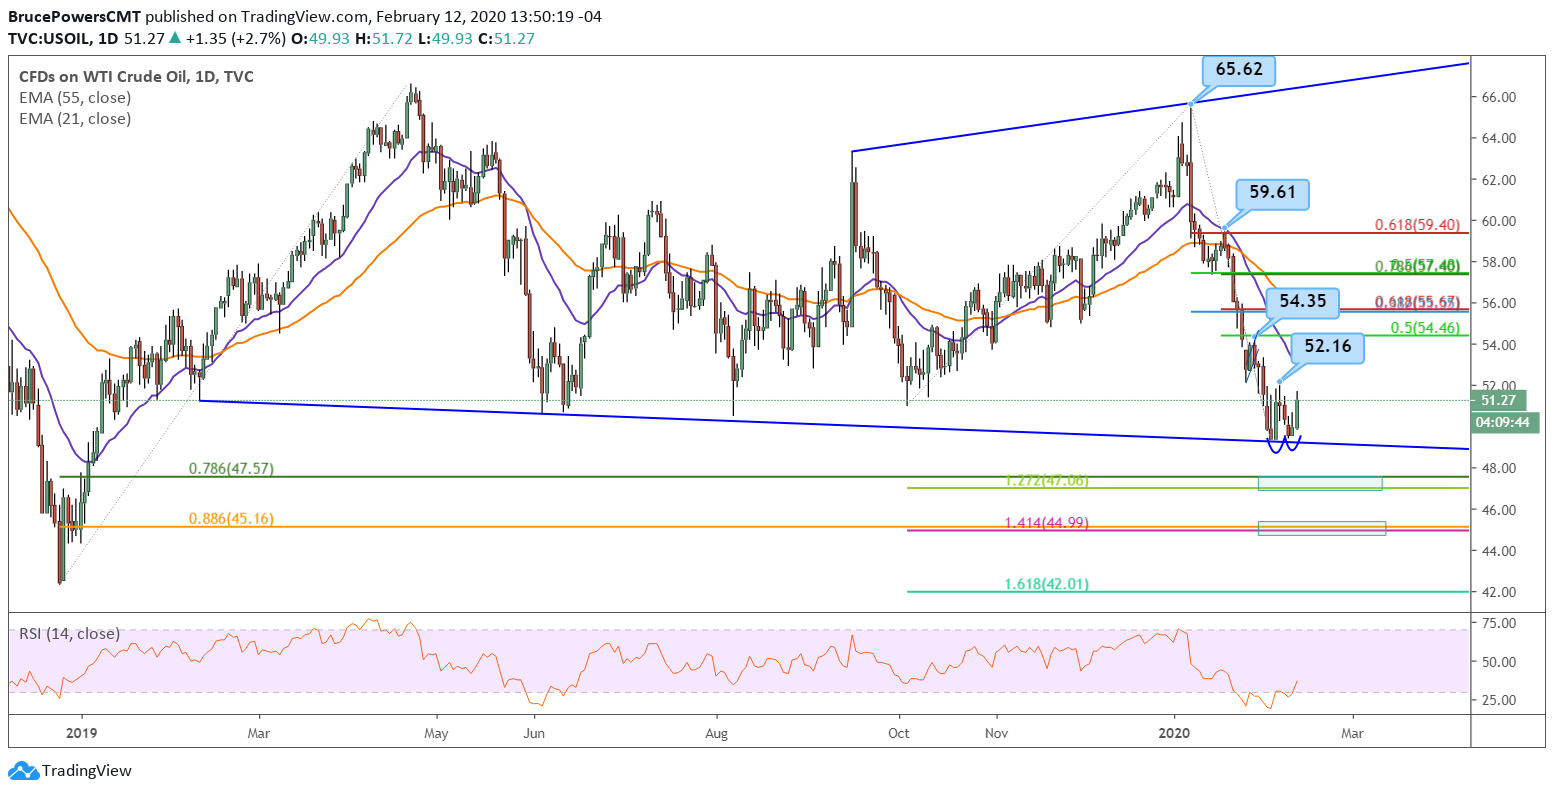 Oil Daily Chart - Large View